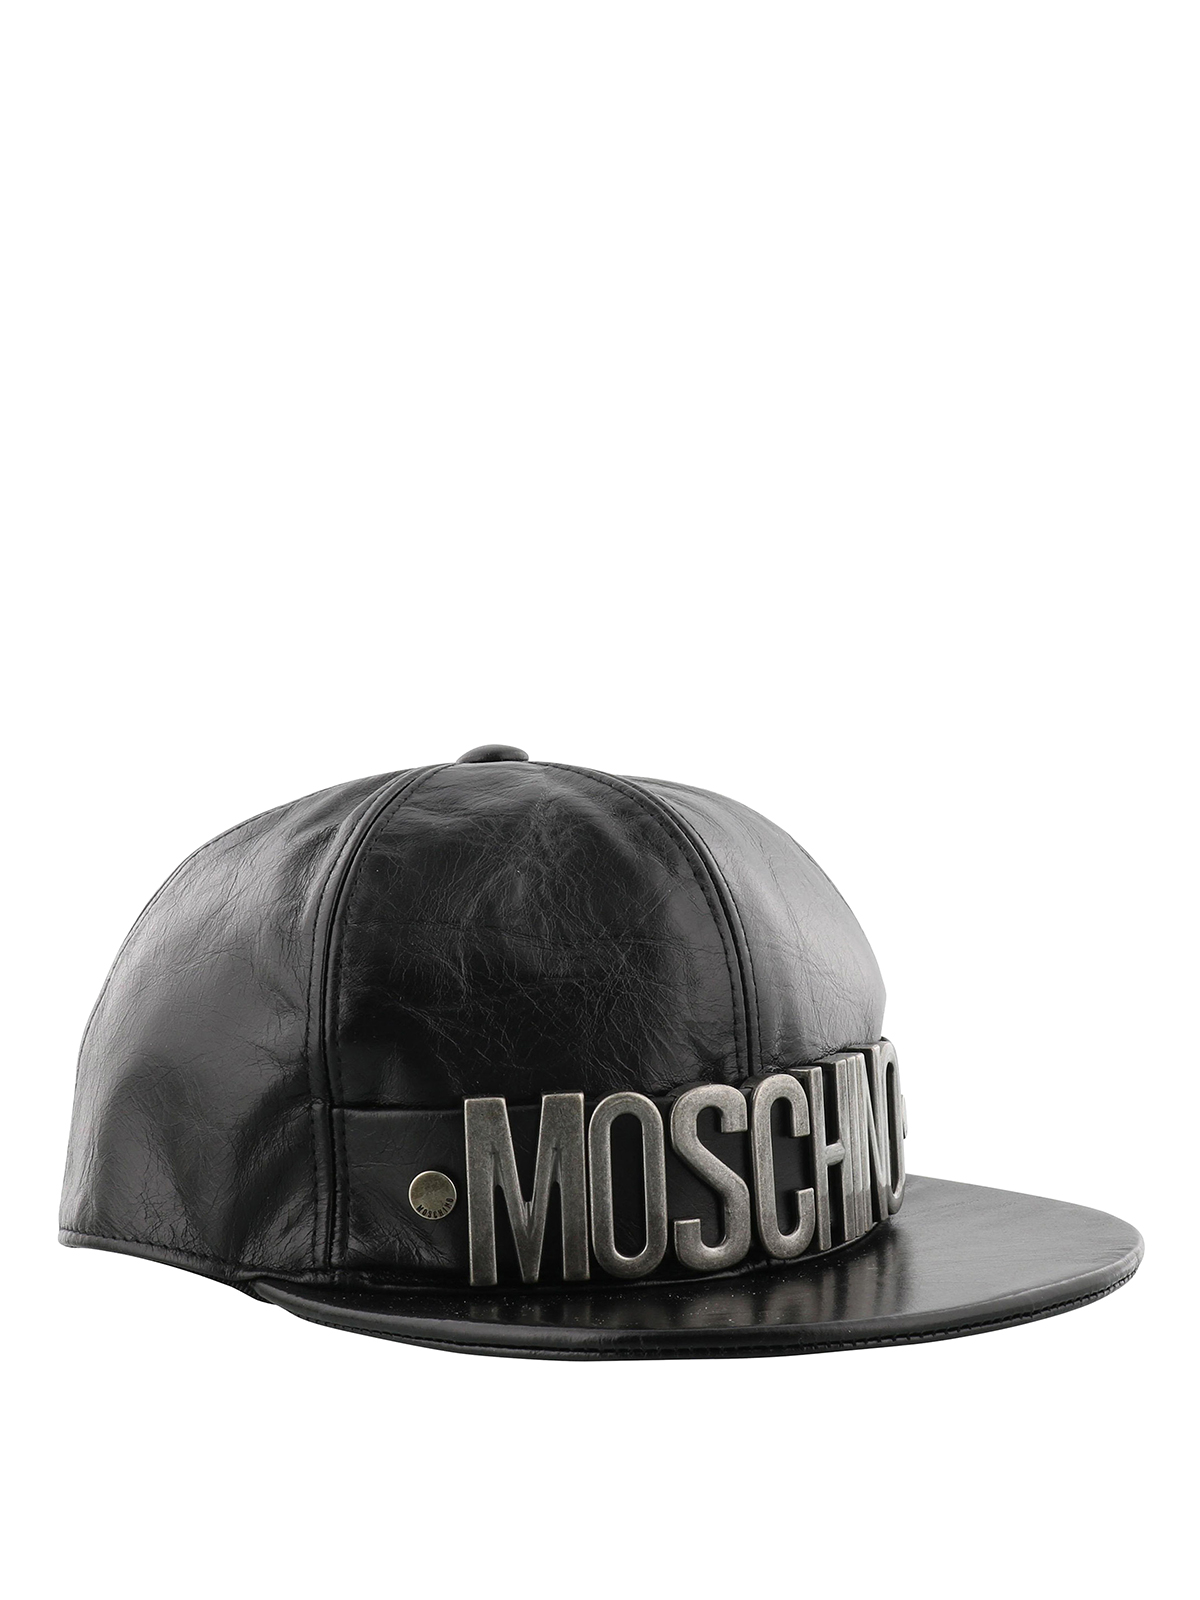 70f7a34216a Moschino - Metal logo crackle leather baseball cap - hats   caps ...